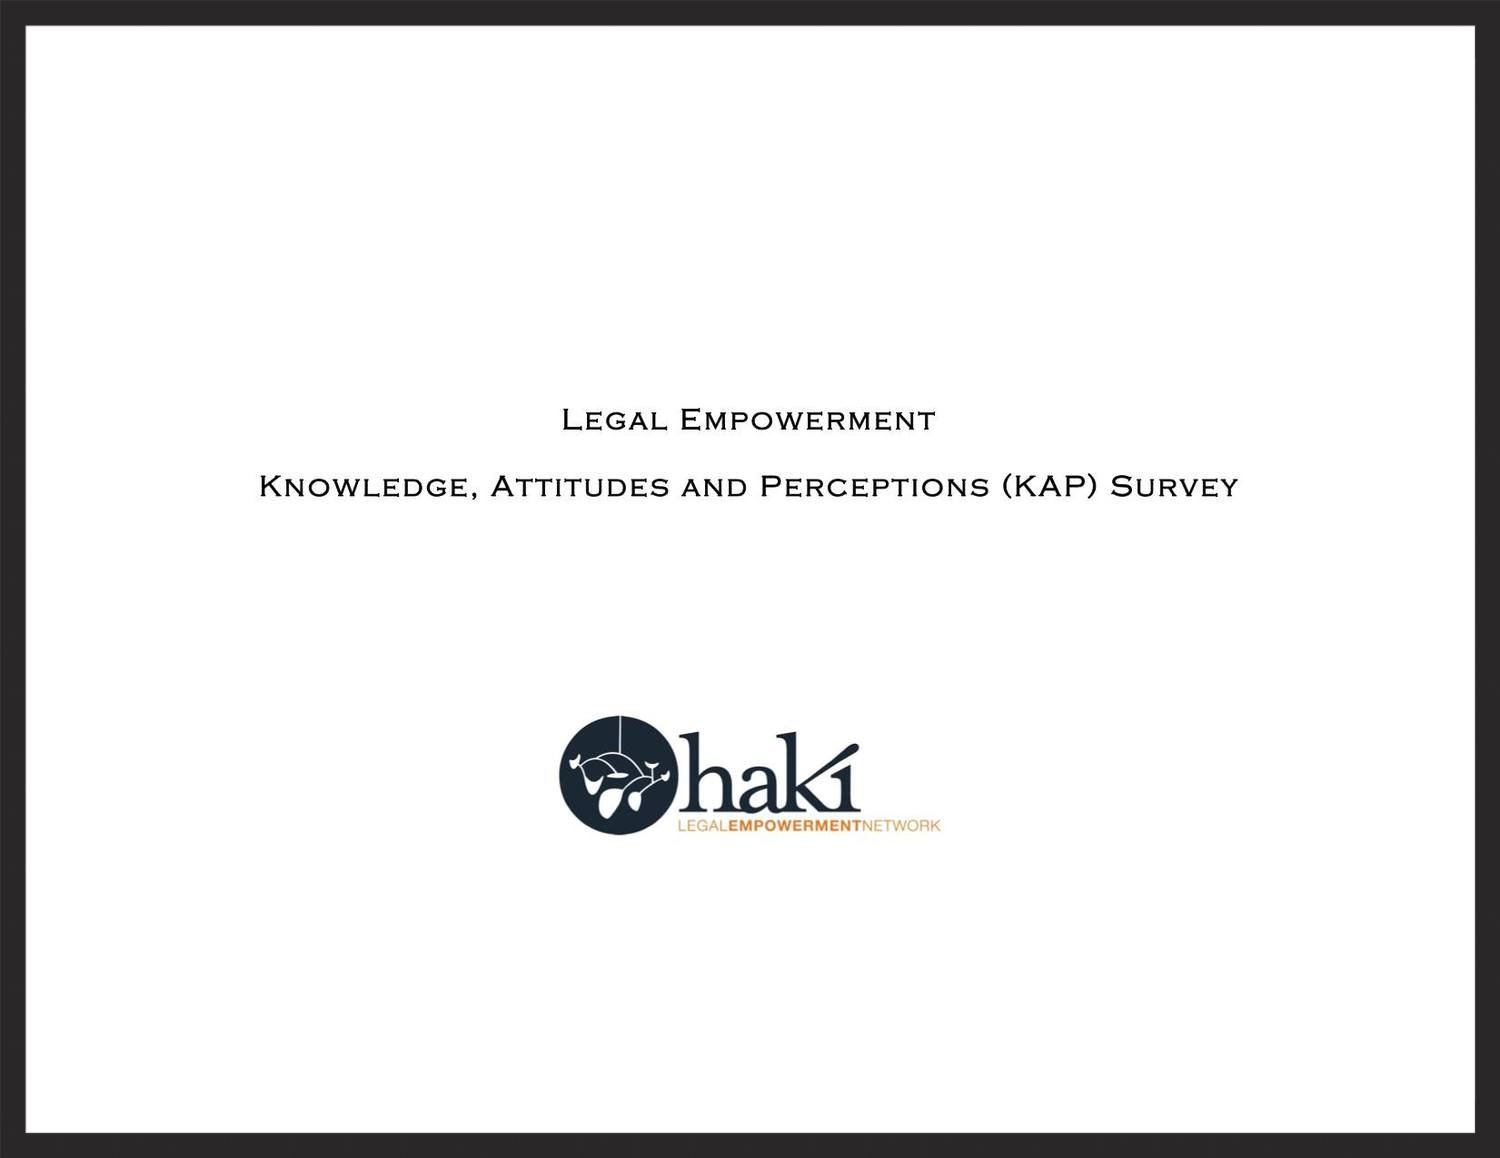 Legal Empowerment KAP Survey